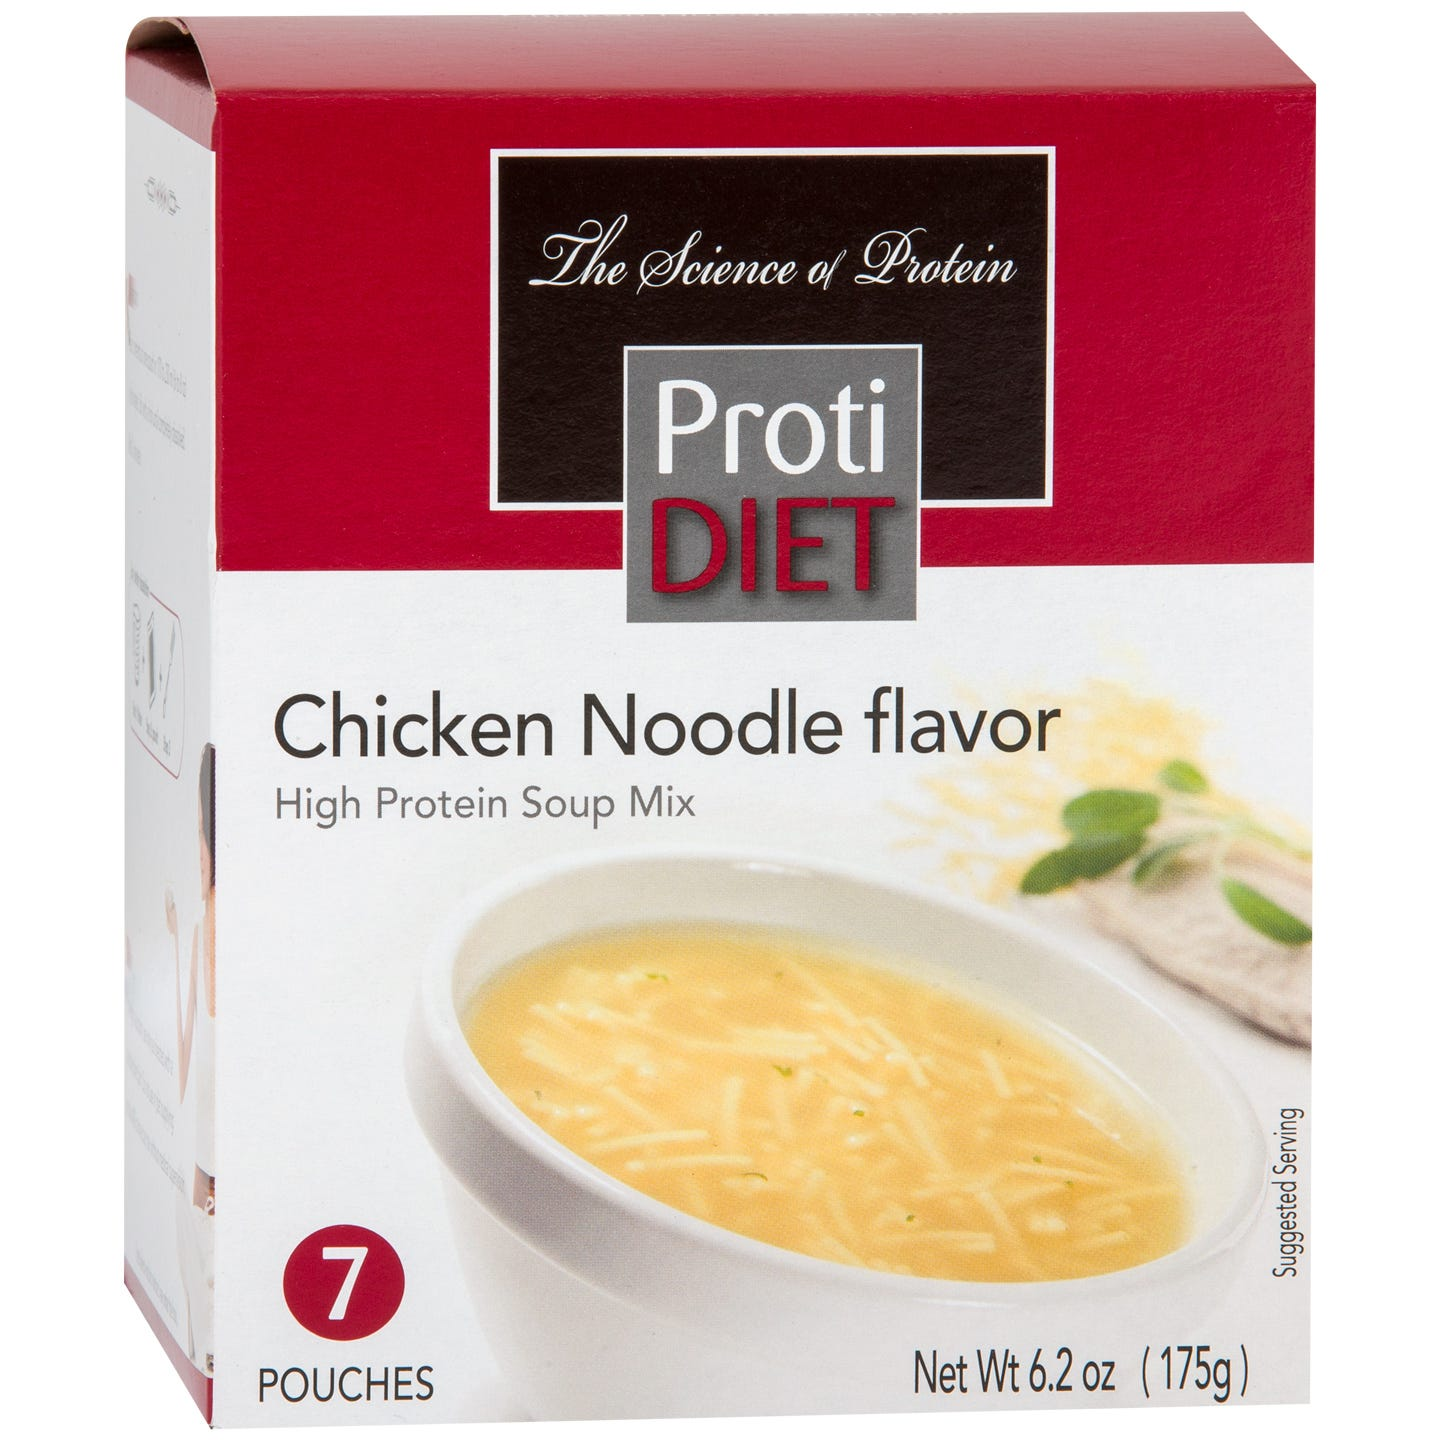 High Protein Soup Mix Chicken Noodle (7 ct) – ProtiDiet